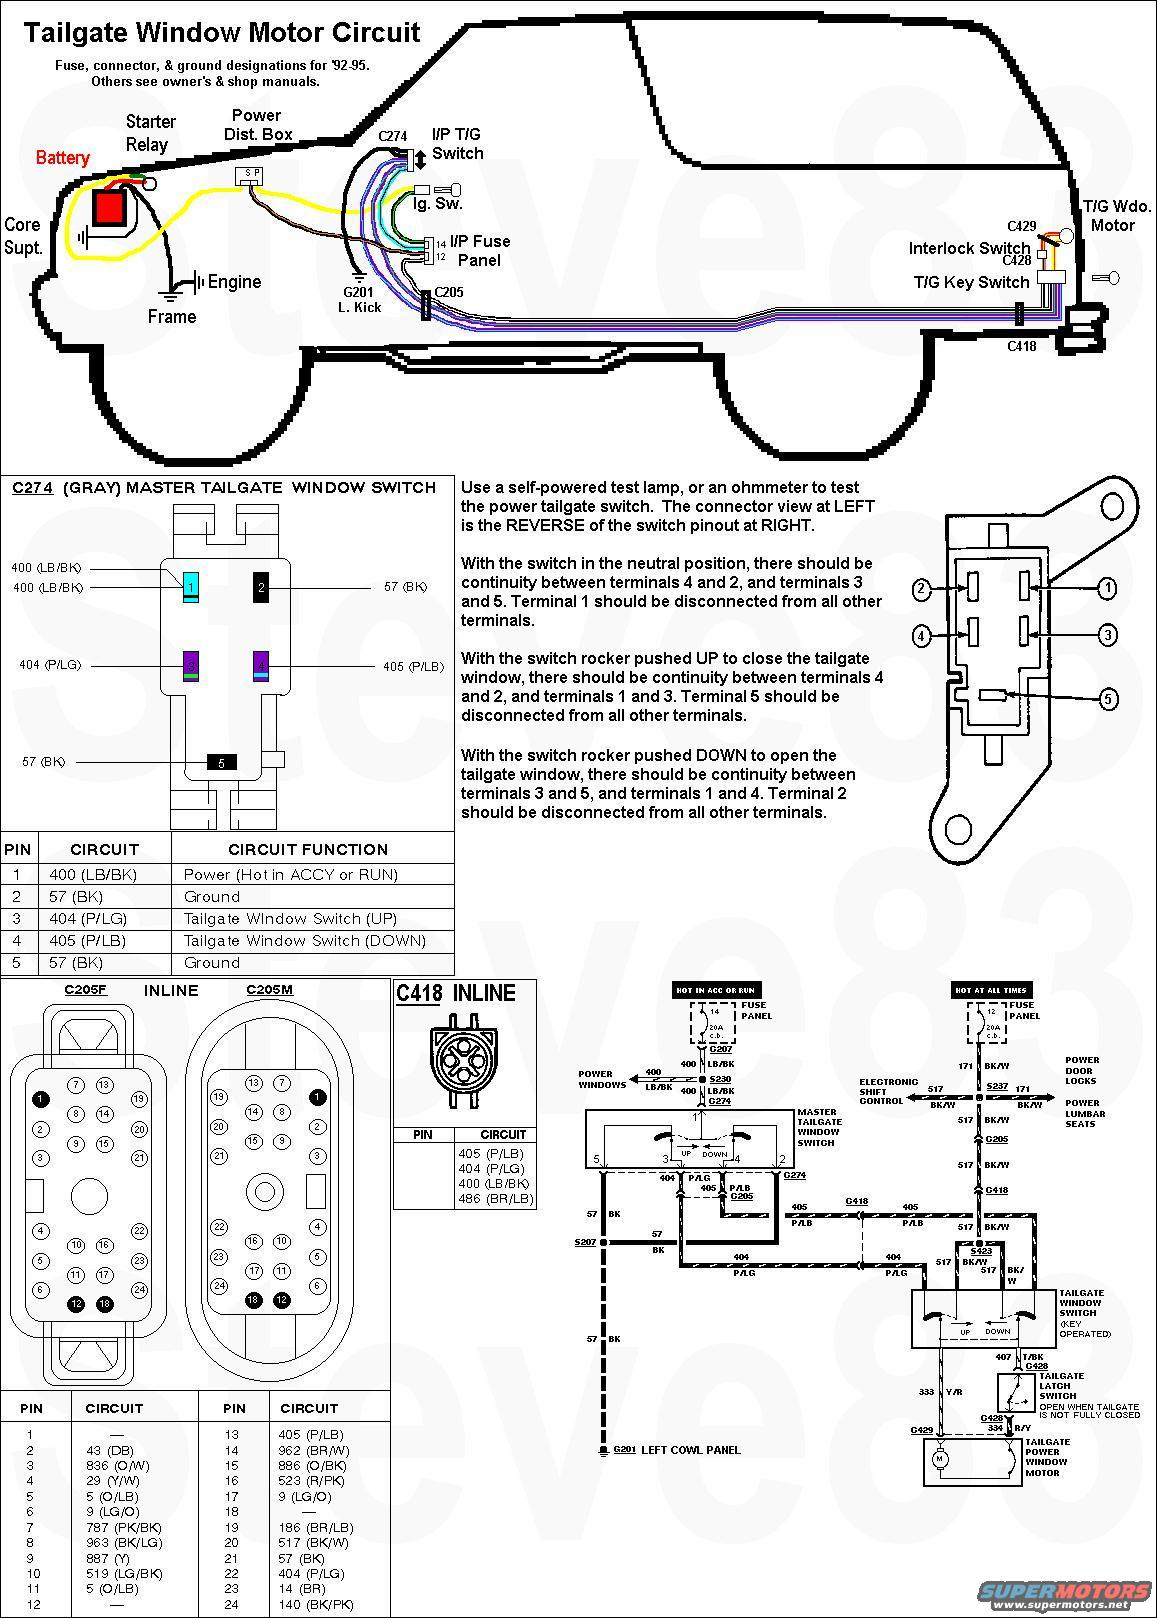 wiring diagram ford bronco the wiring diagram 76 ford bronco wiring diagram nilza wiring diagram